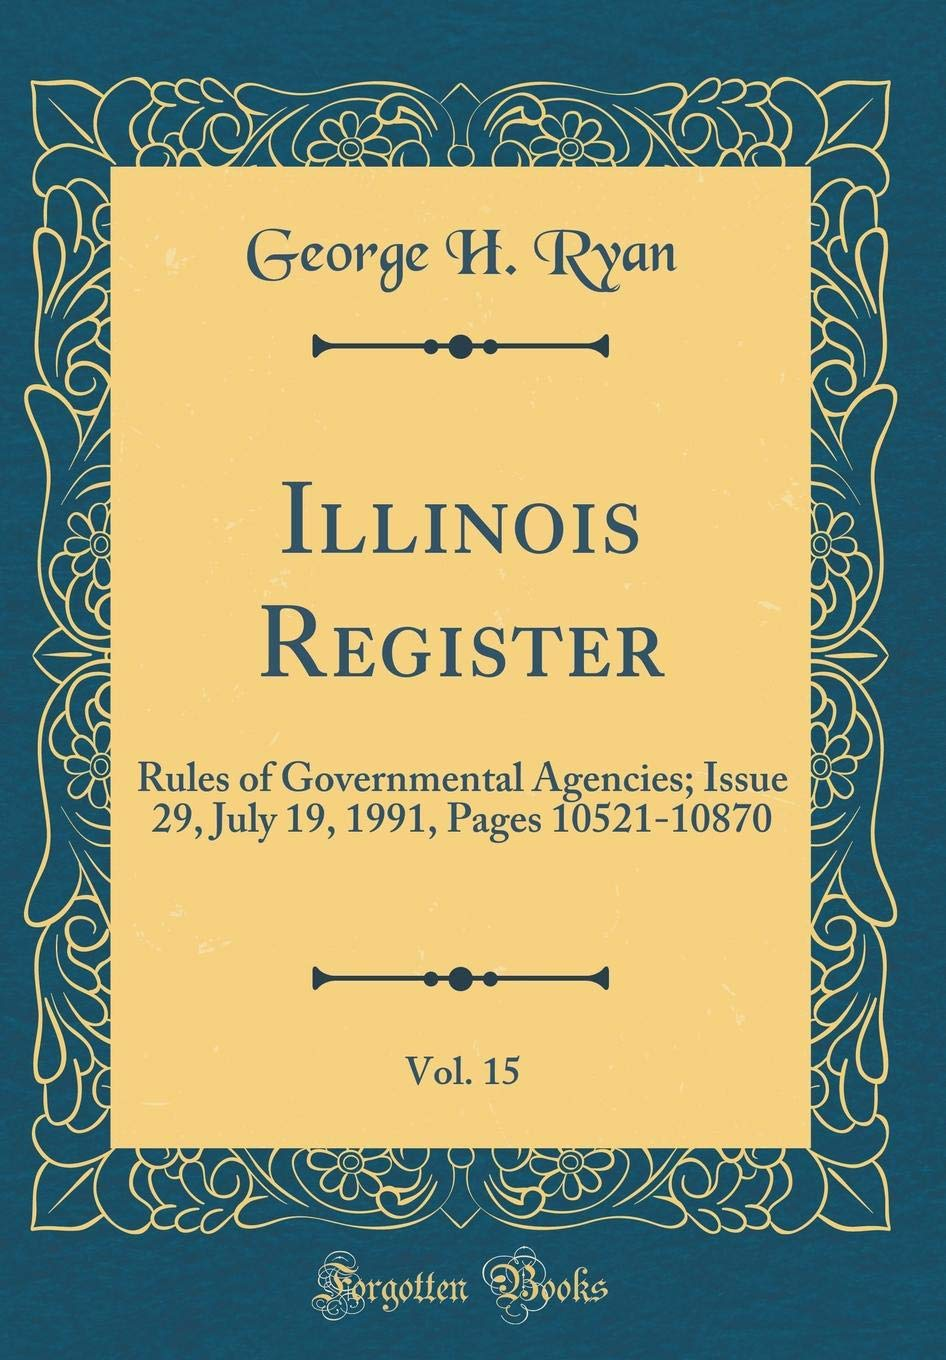 Download Illinois Register, Vol. 15: Rules of Governmental Agencies; Issue 29, July 19, 1991, Pages 10521-10870 (Classic Reprint) pdf